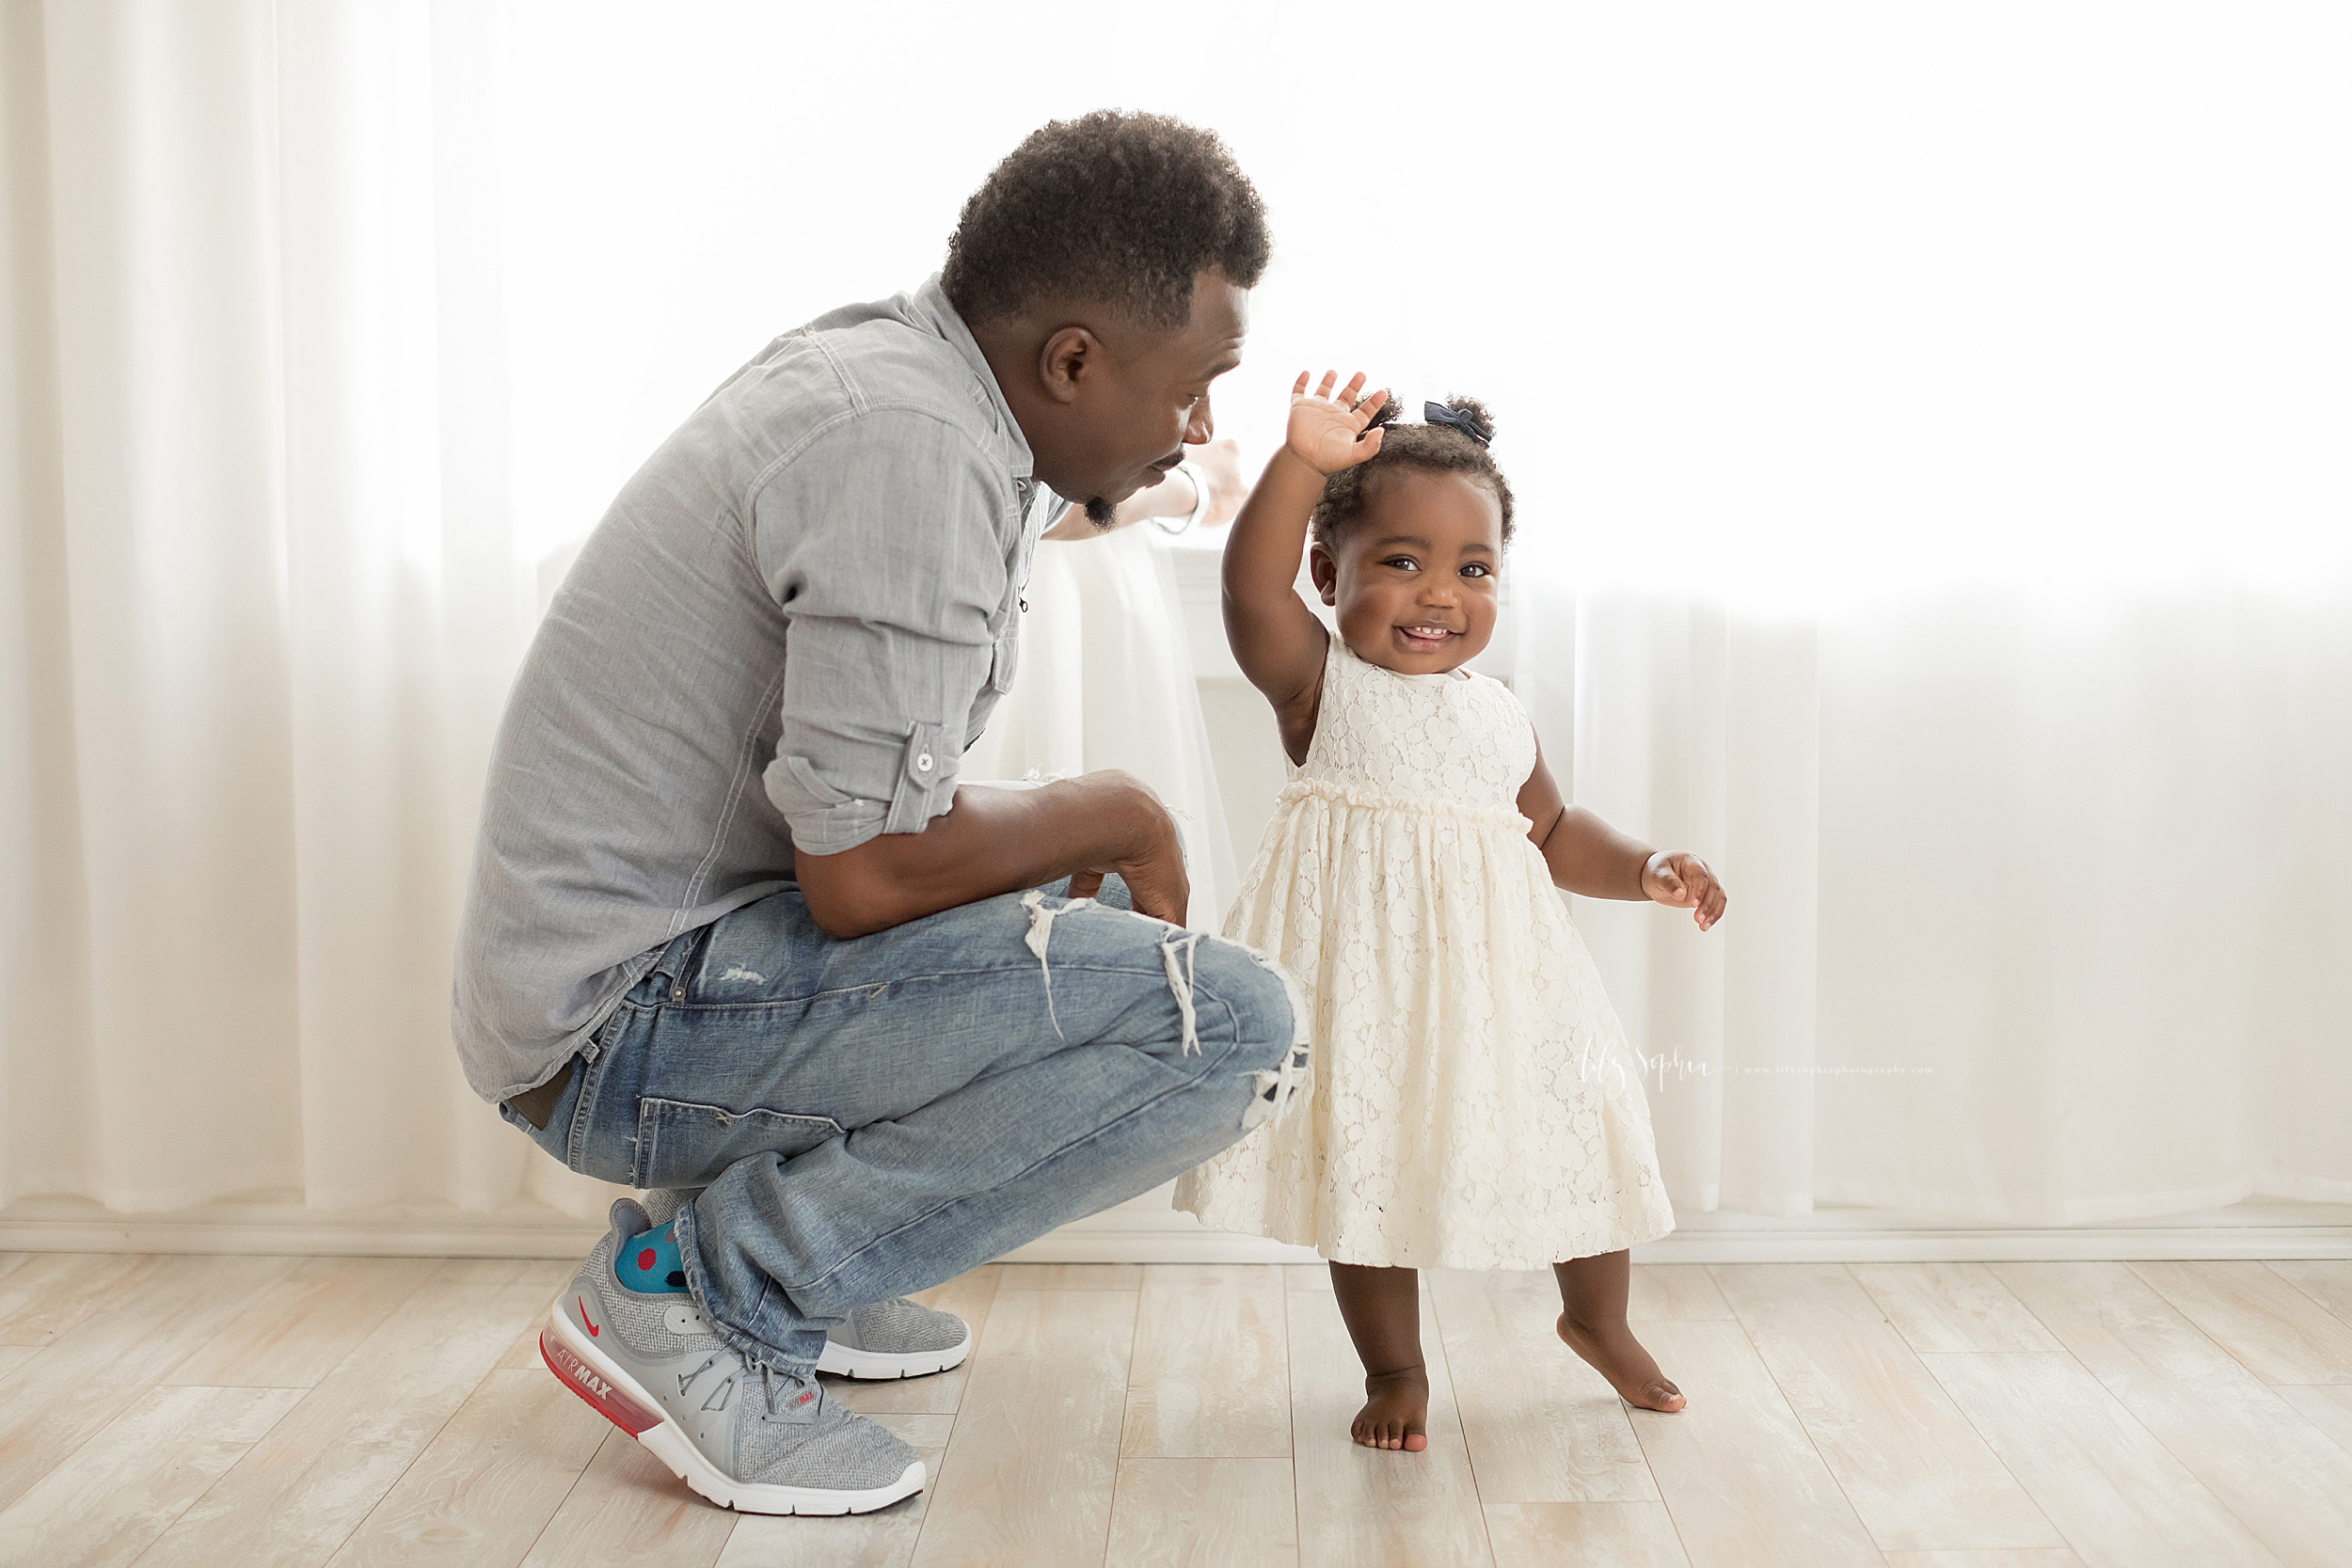 Photo of an African-American dad and his daughter in an Atlanta natural light studio.  The father has a mustache and goatee squatting beside his daughter.  He is wearing a gray button down linen shirt with roll tab sleeves, wash ripped blue jeans and gray Nike sneakers.  His profile is shown as he faces to the right with his right hand resting on his right thigh.  His daughter is standing barefoot with her right hand in the air waving hello.  She is wearing an off-white sleeveless lace dress.